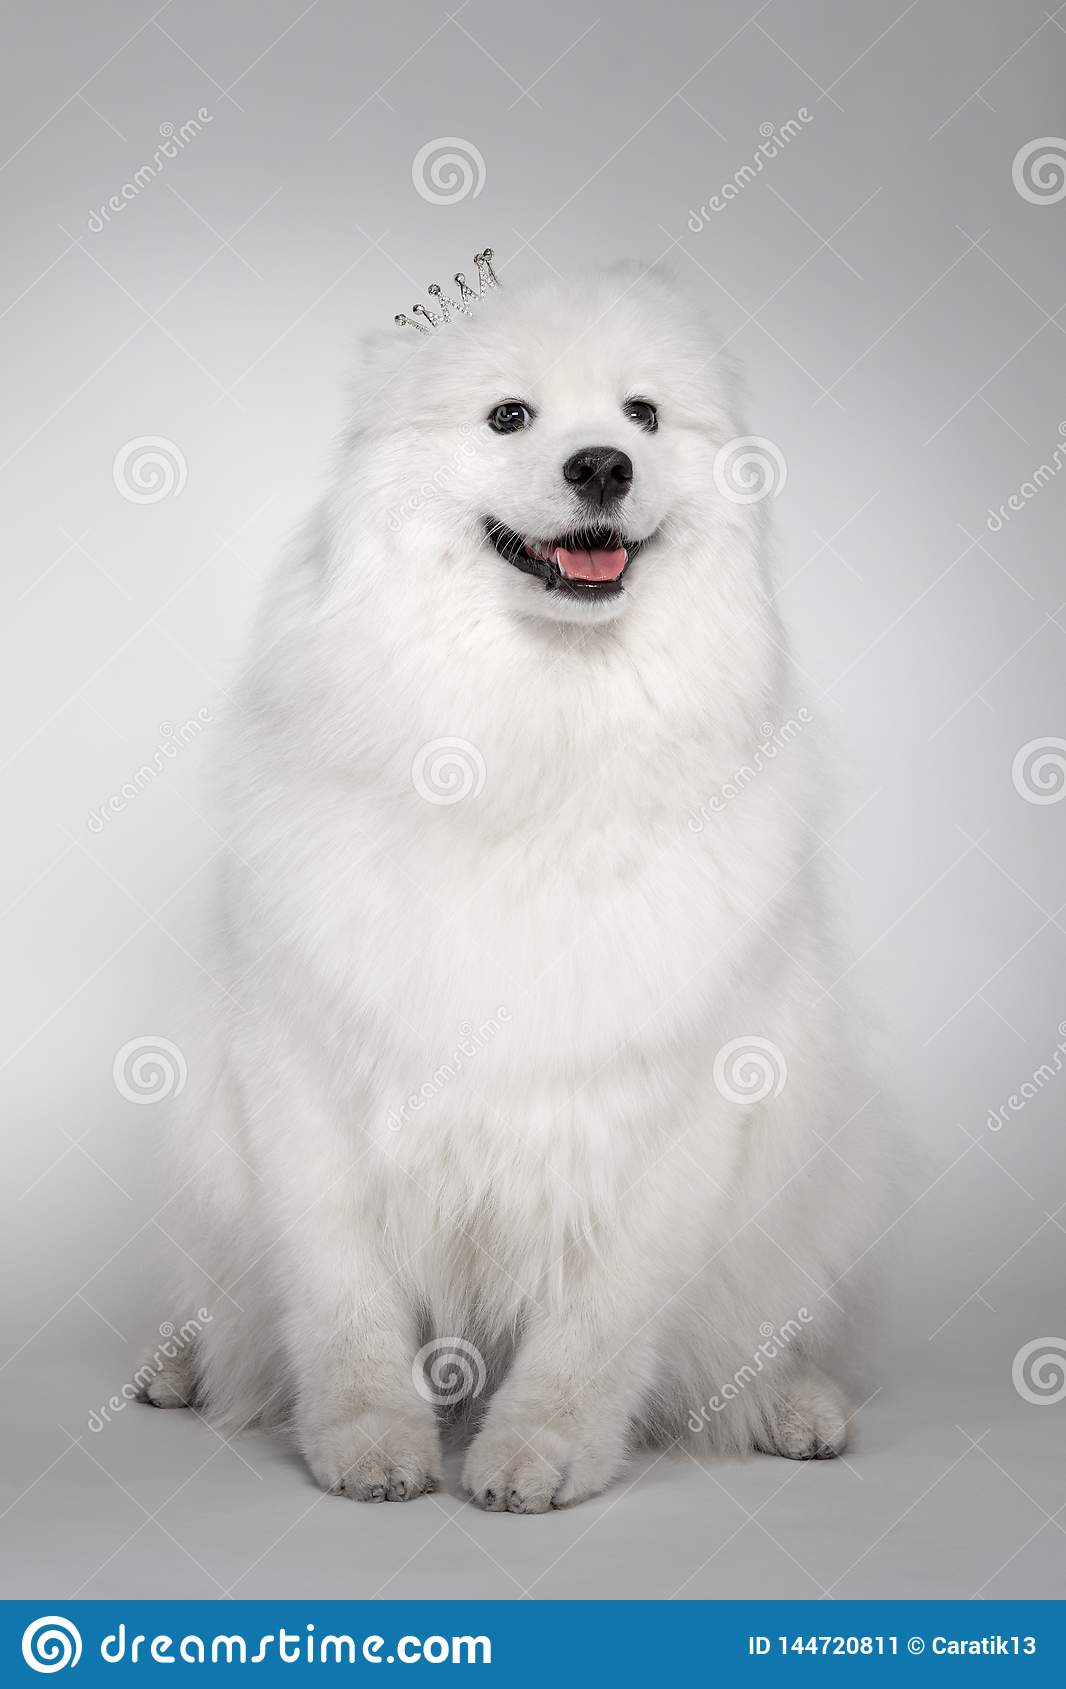 Portrait Of Funny Puppy Of Samoyed Dog At Studio On White Background Cutest Puppy Looking Smiling Stock Image Image Of Background Hair 144720811